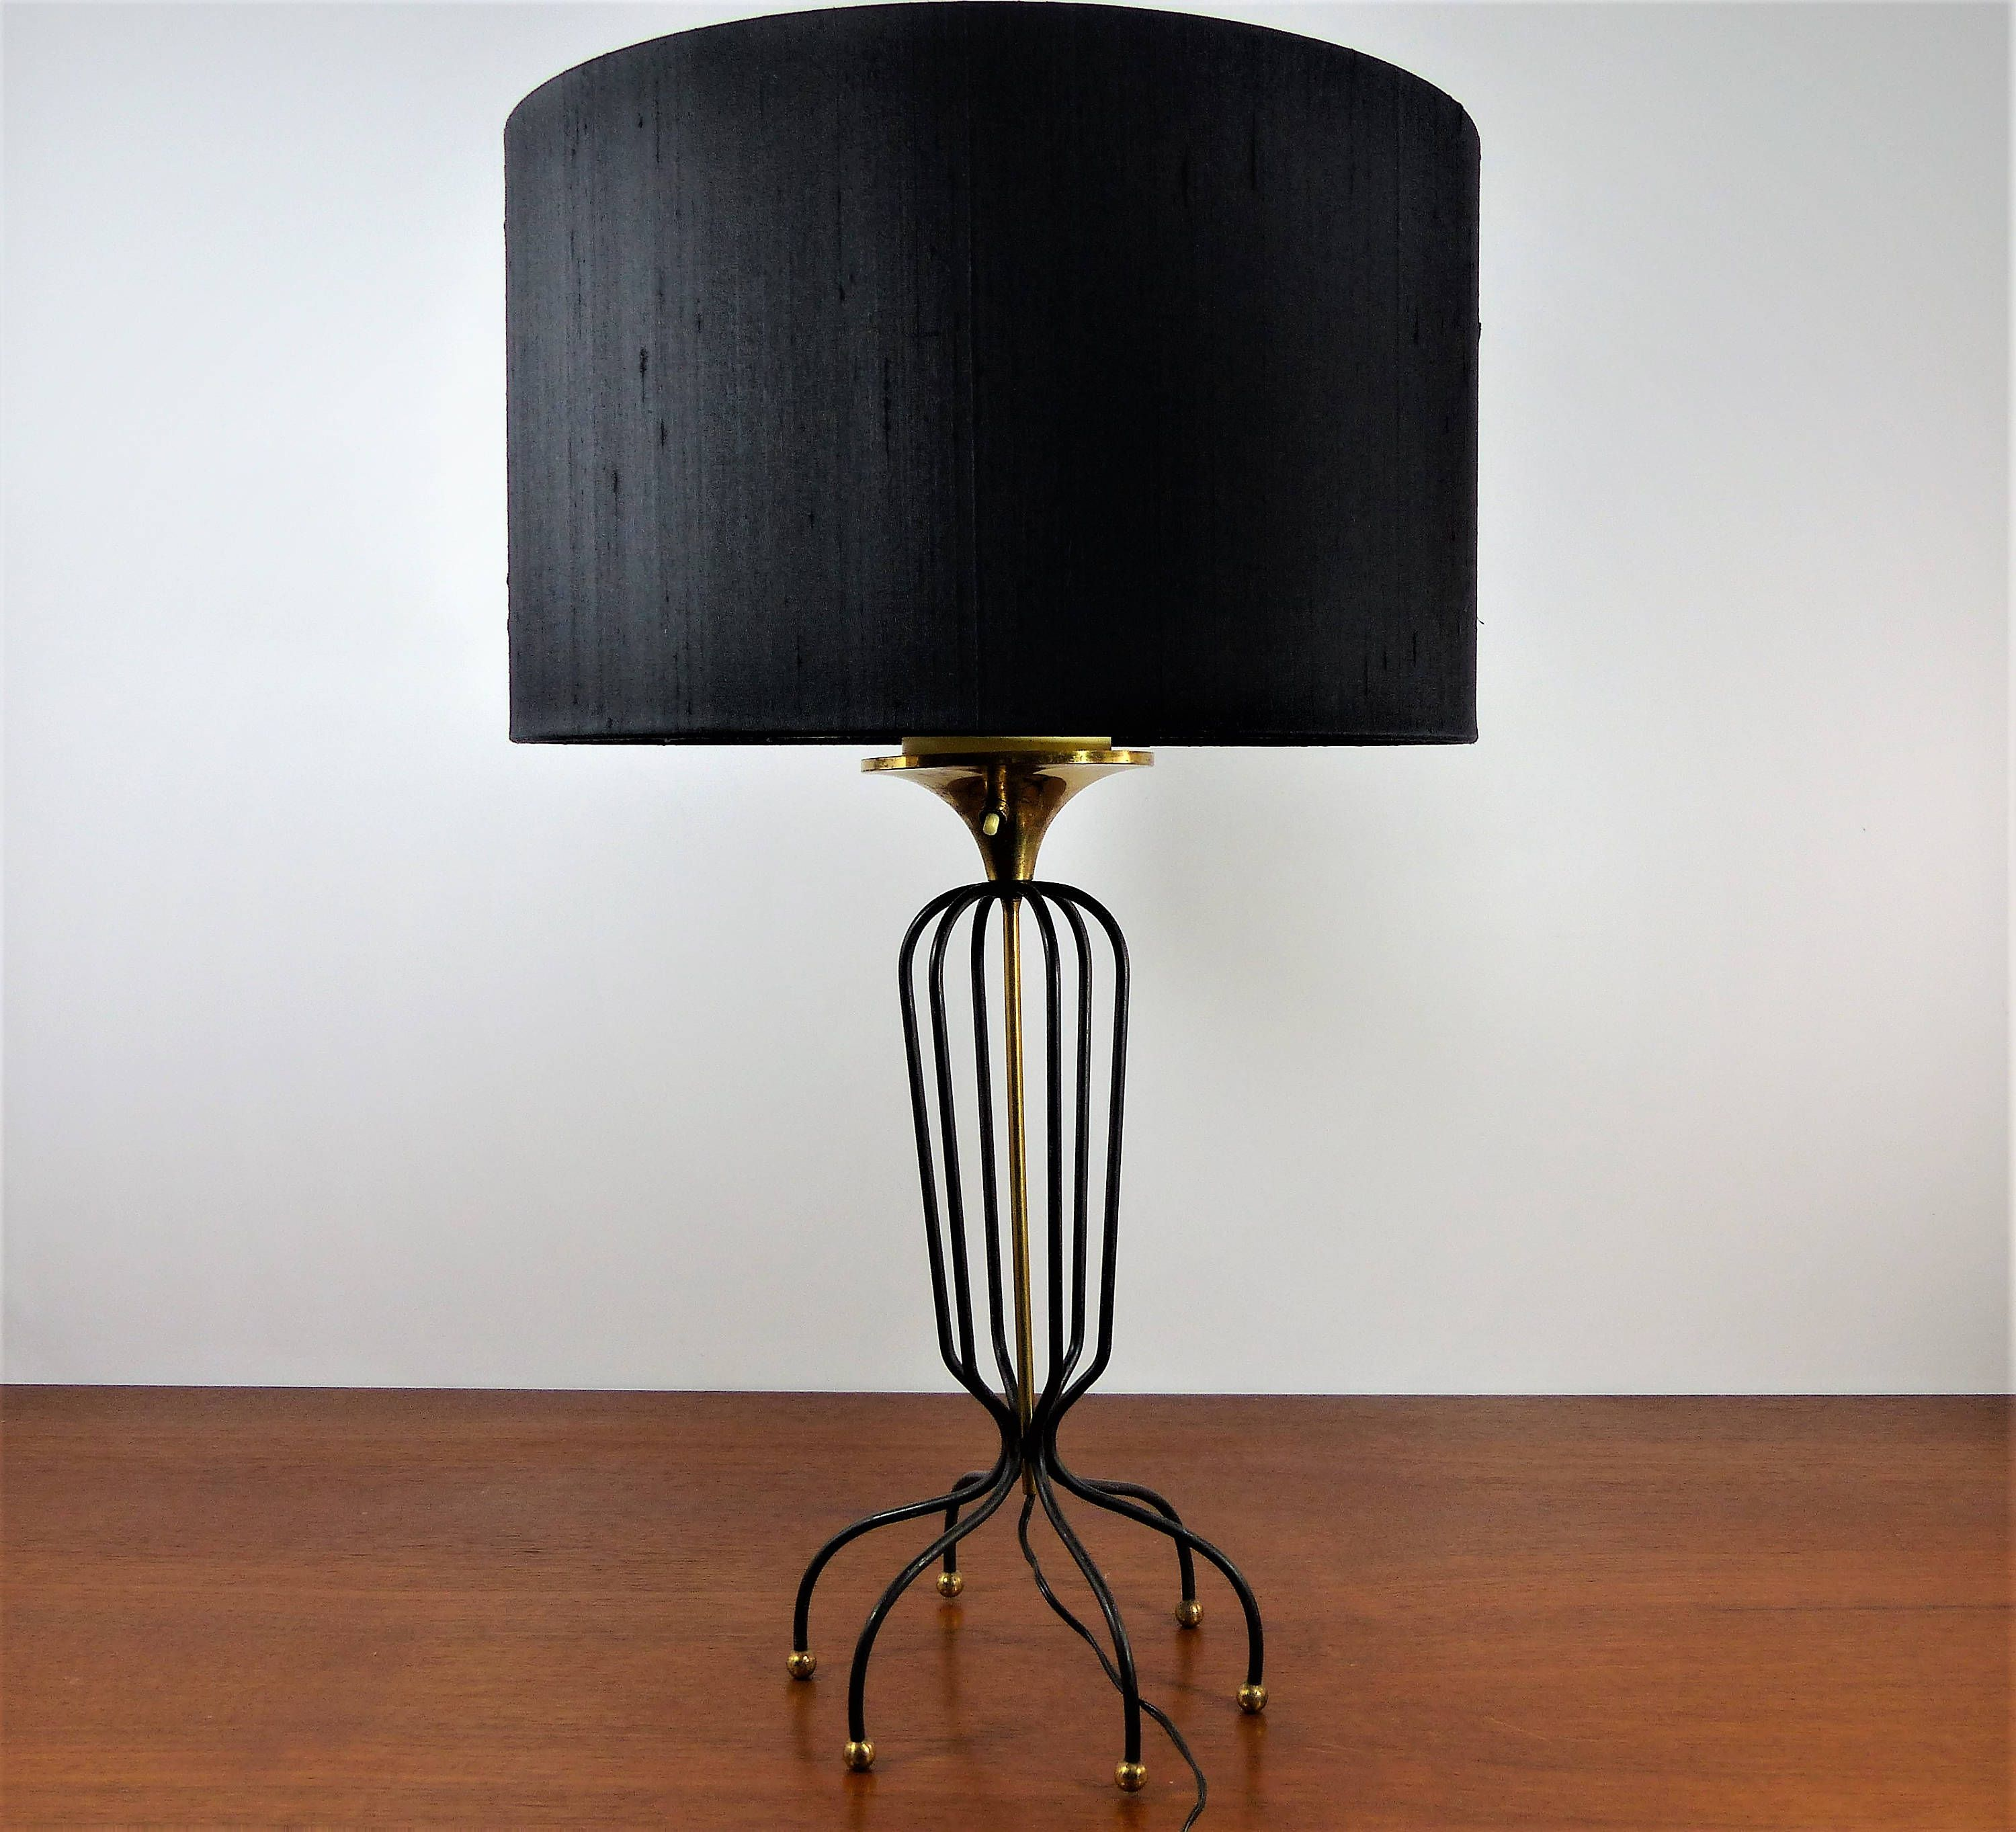 Table lamp 1950 - Table lamp Jean Royère Style | Elegant table, Lamp ...